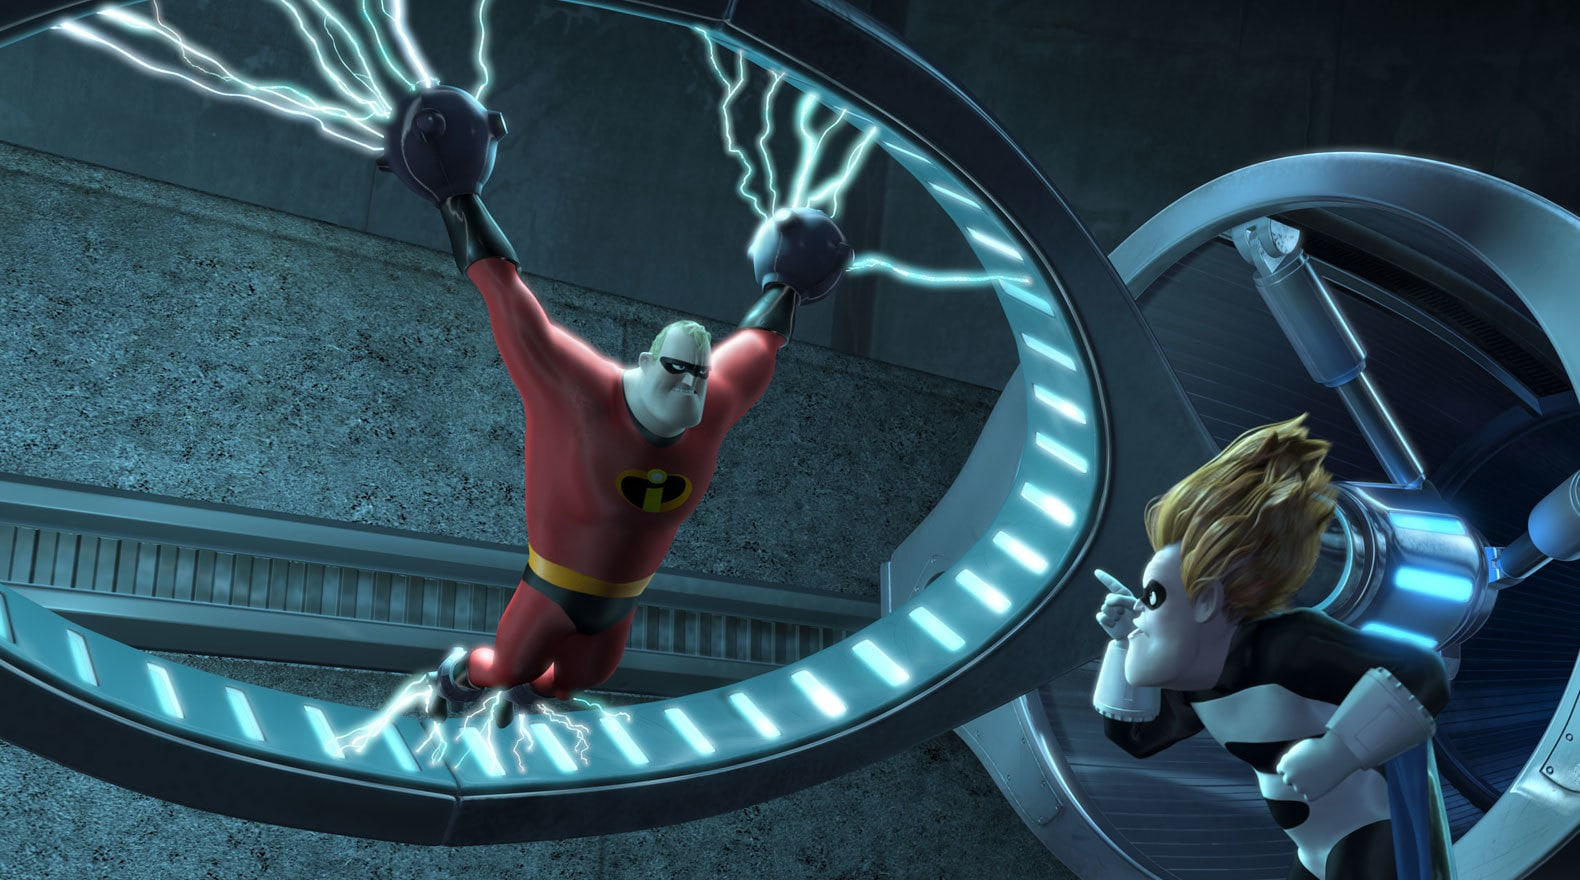 Mr. Incredible has a hard time getting past Syndrome.